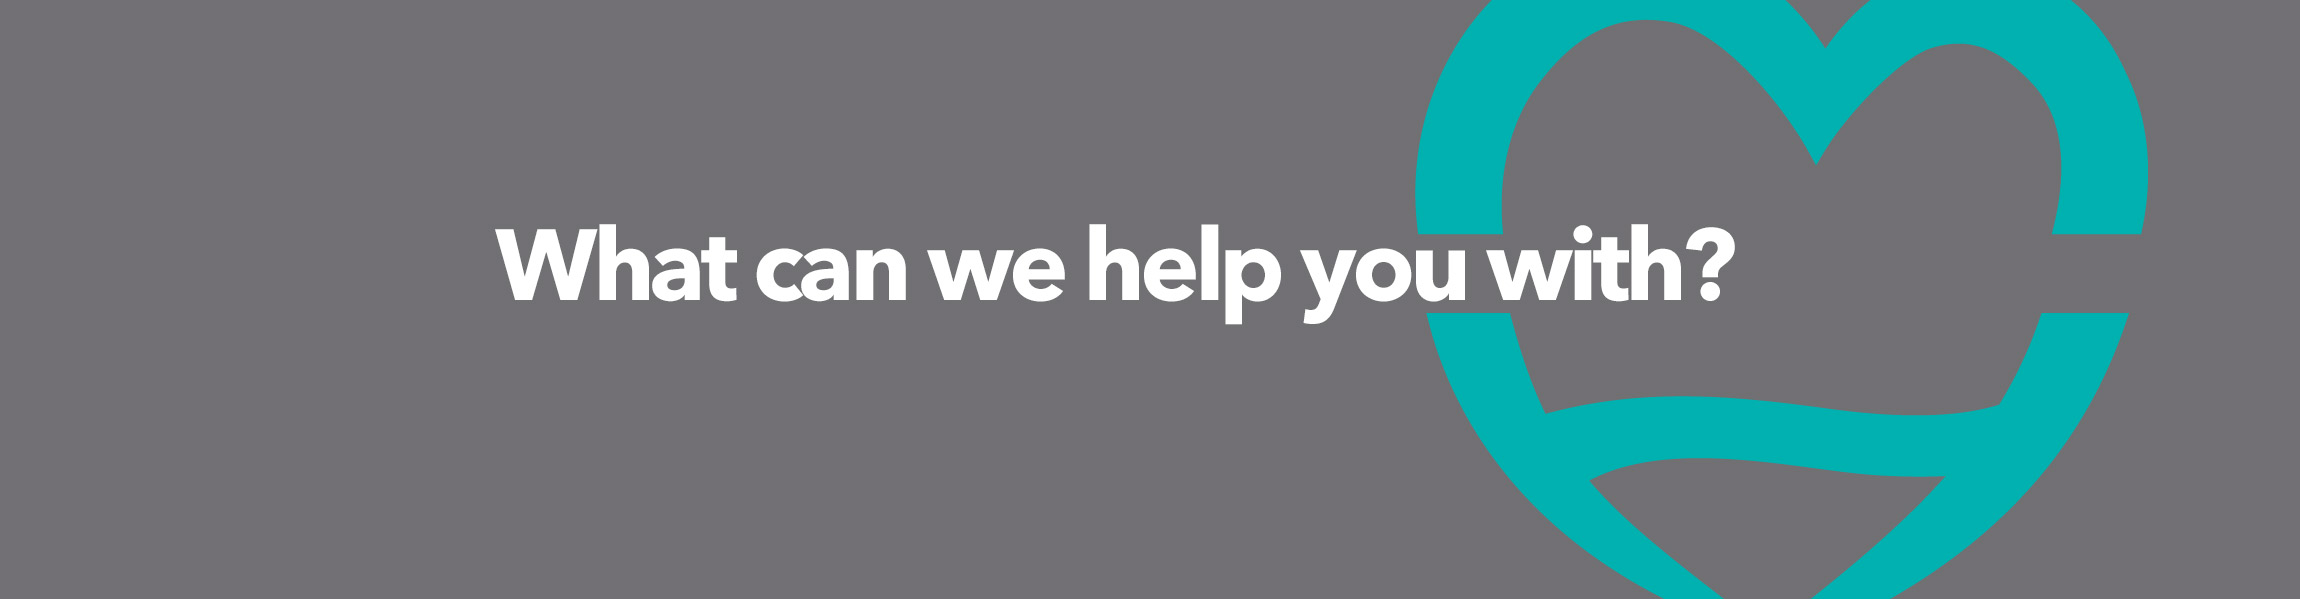 What can we help you with?